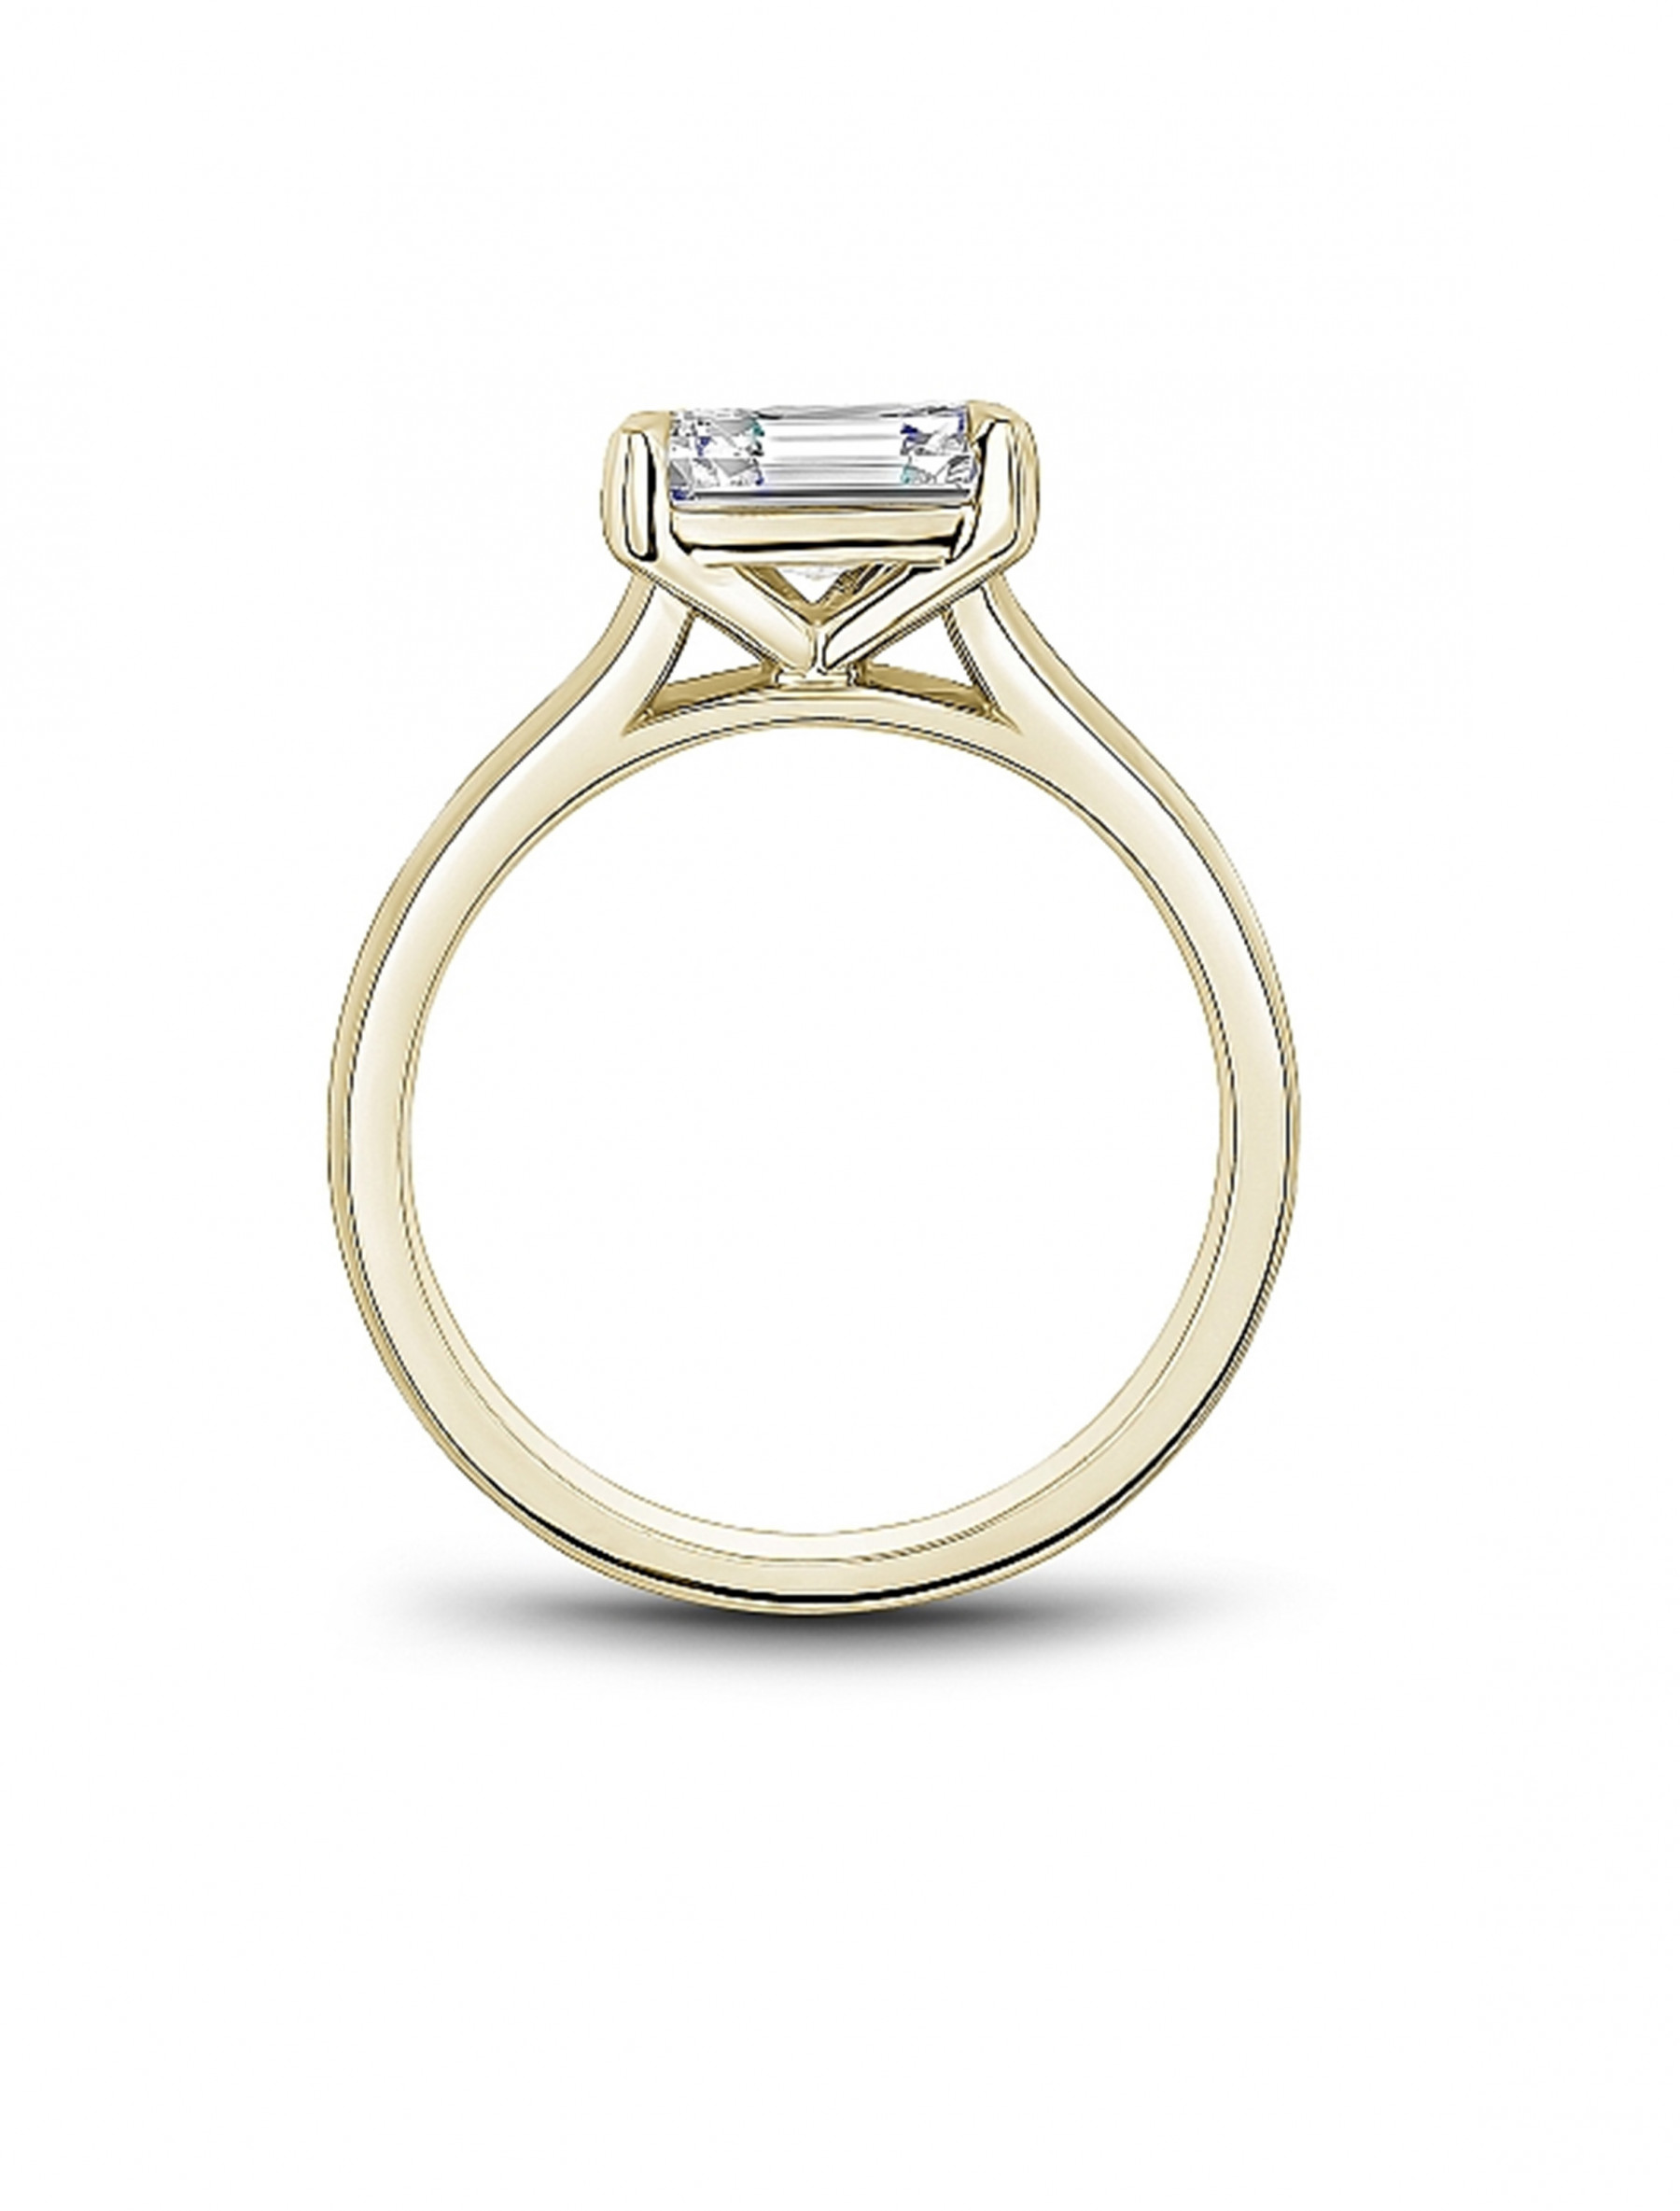 Noam Carver Emerald Solitaire East West Engagement Ring Setting in 18K Gold side view